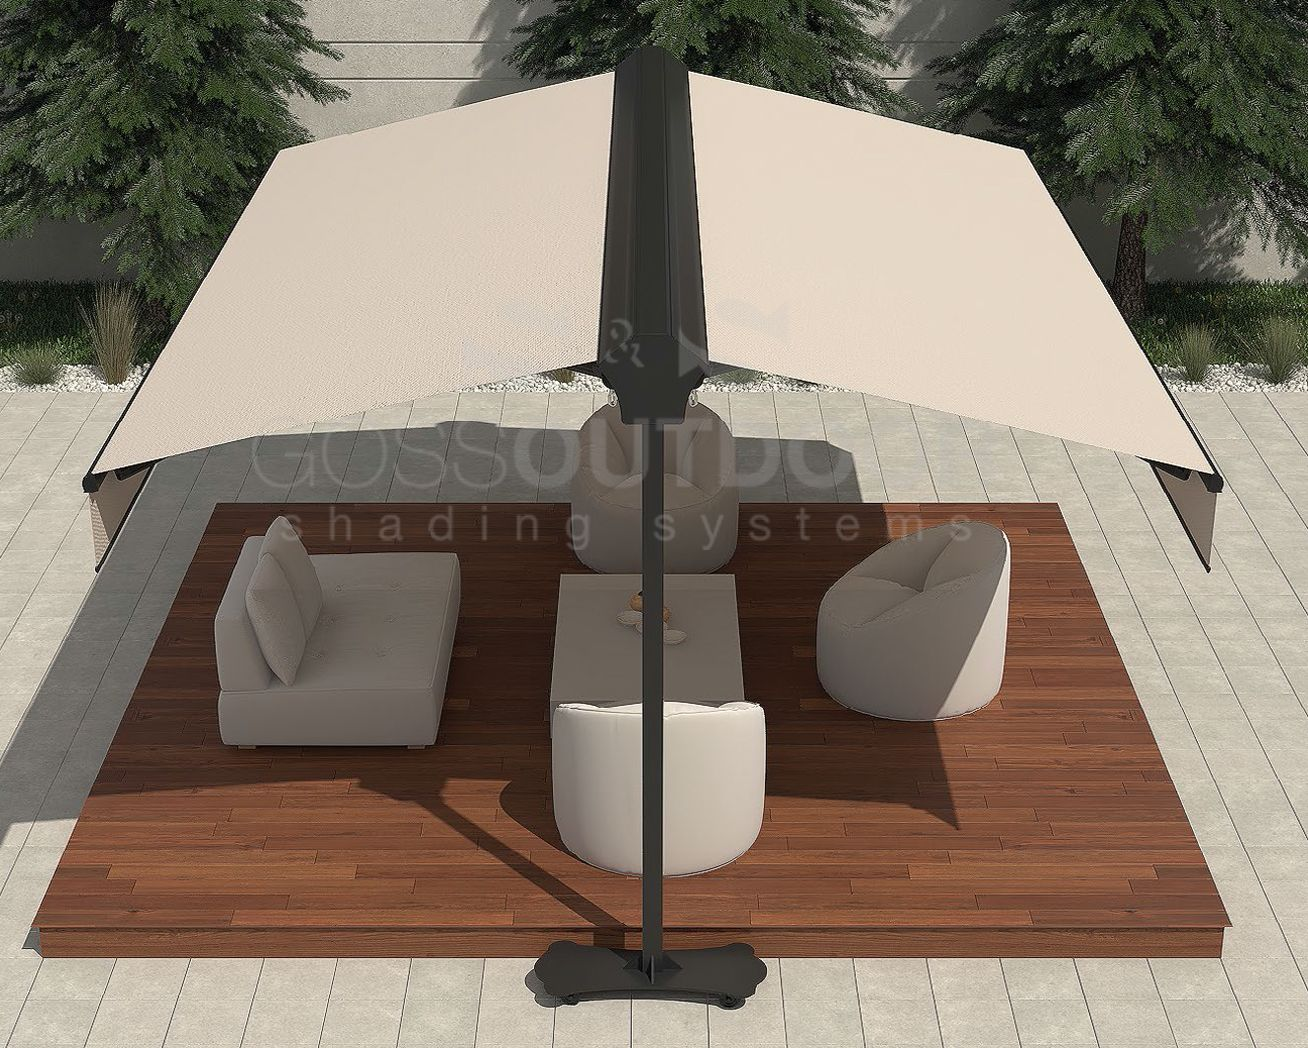 Twins Classic Awnings Patio Shade Retractable Pergola Shading System